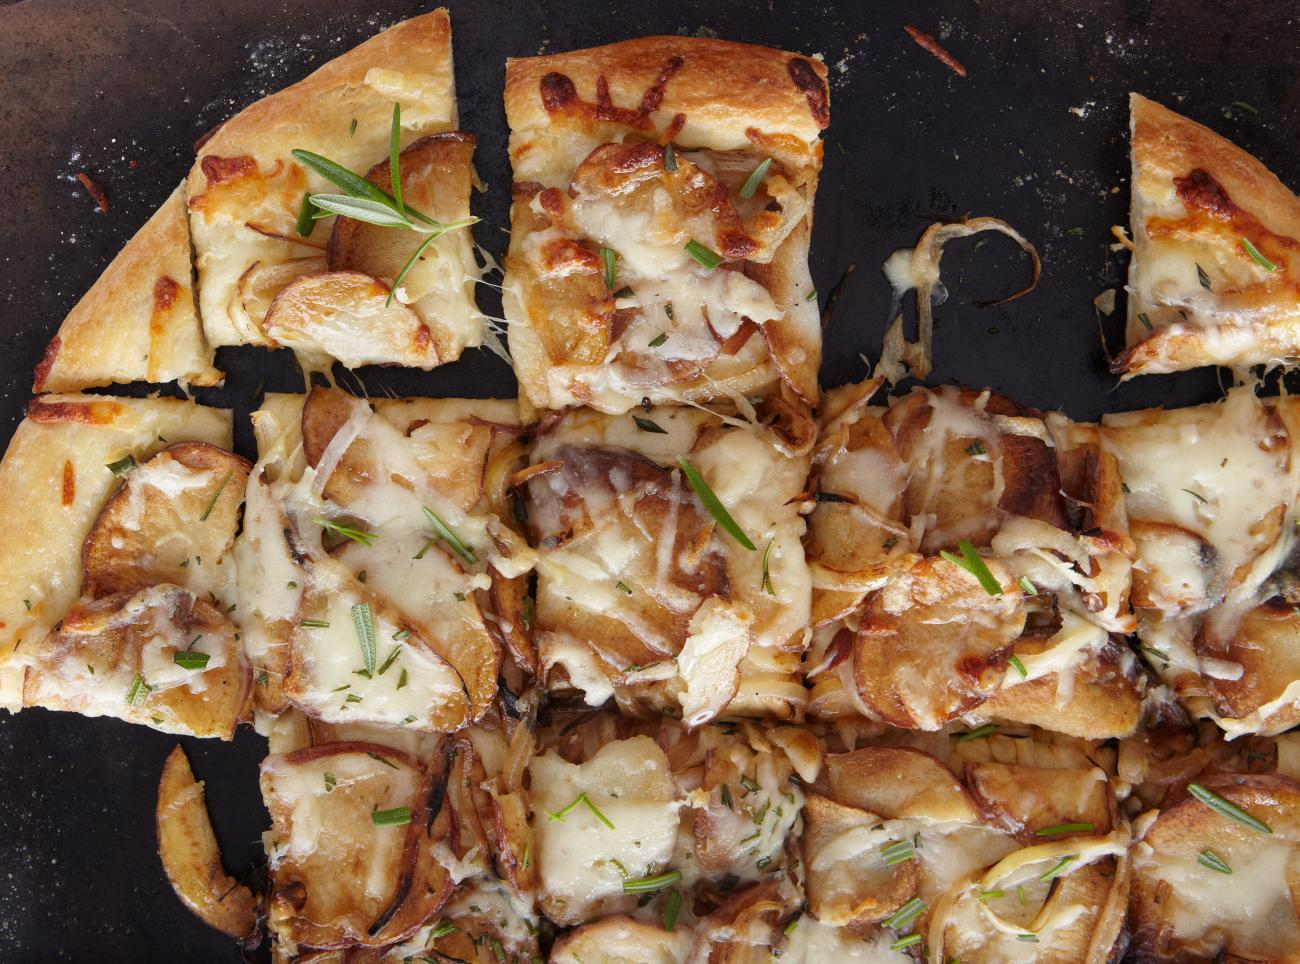 Recipe for Potato Pizza With Sweet Onions and Rosemary